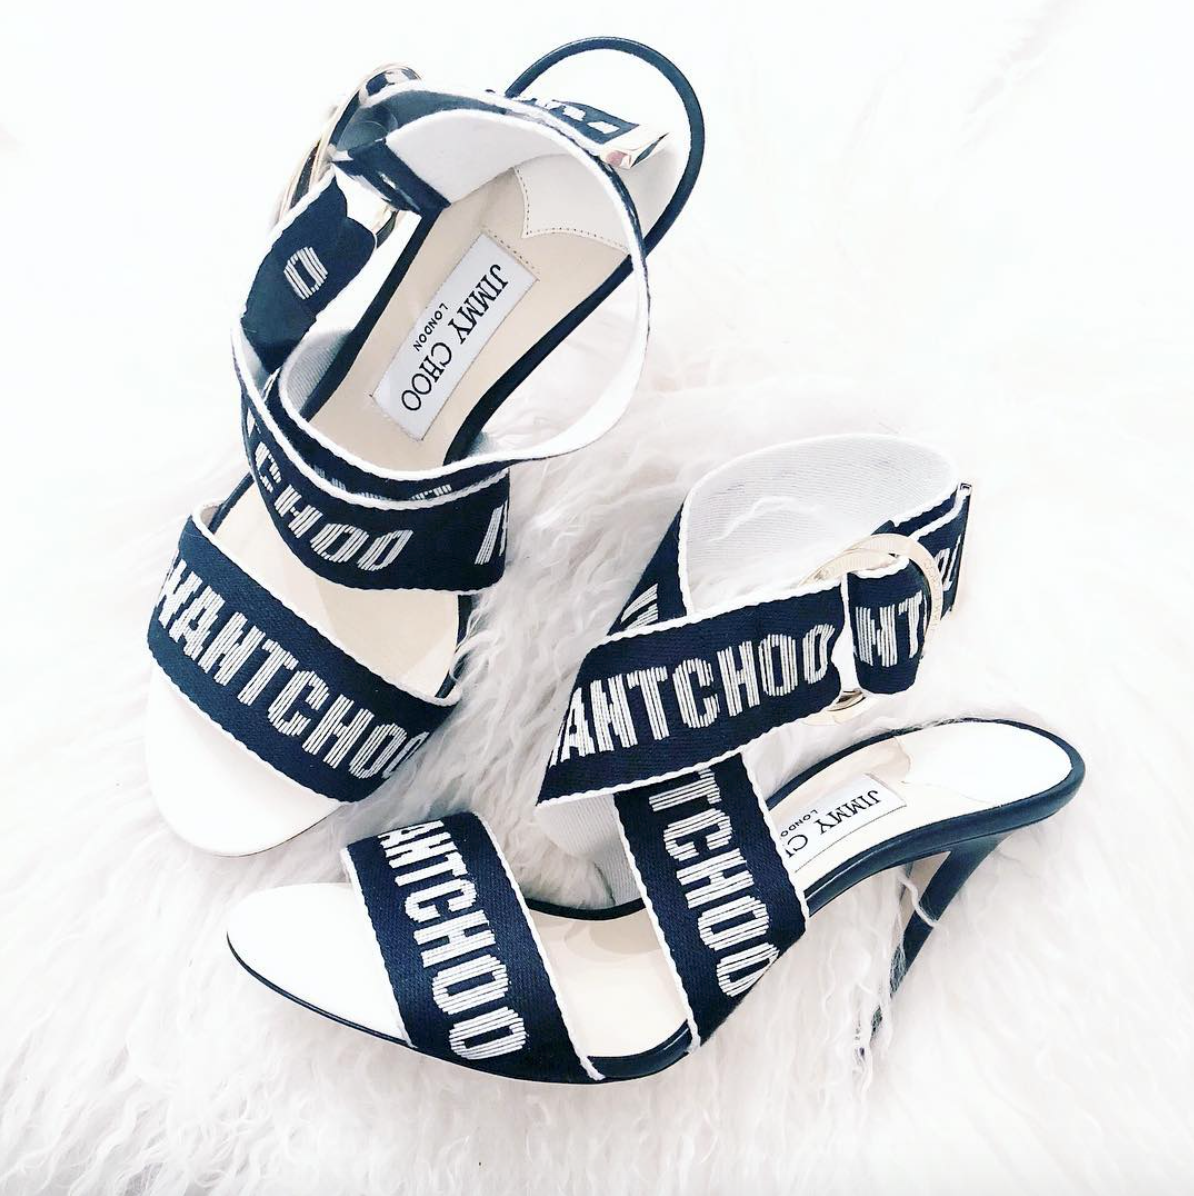 JIMMY CHOO - Costa, my husband, recently surprised me with these Jimmy Choo Bailey Logo-Web Sandal.He has been caught up in #allthethings #worldcup, and as these have a sporty look to them, I thinksoccer had somethingto do with it! They are SO comfortable!